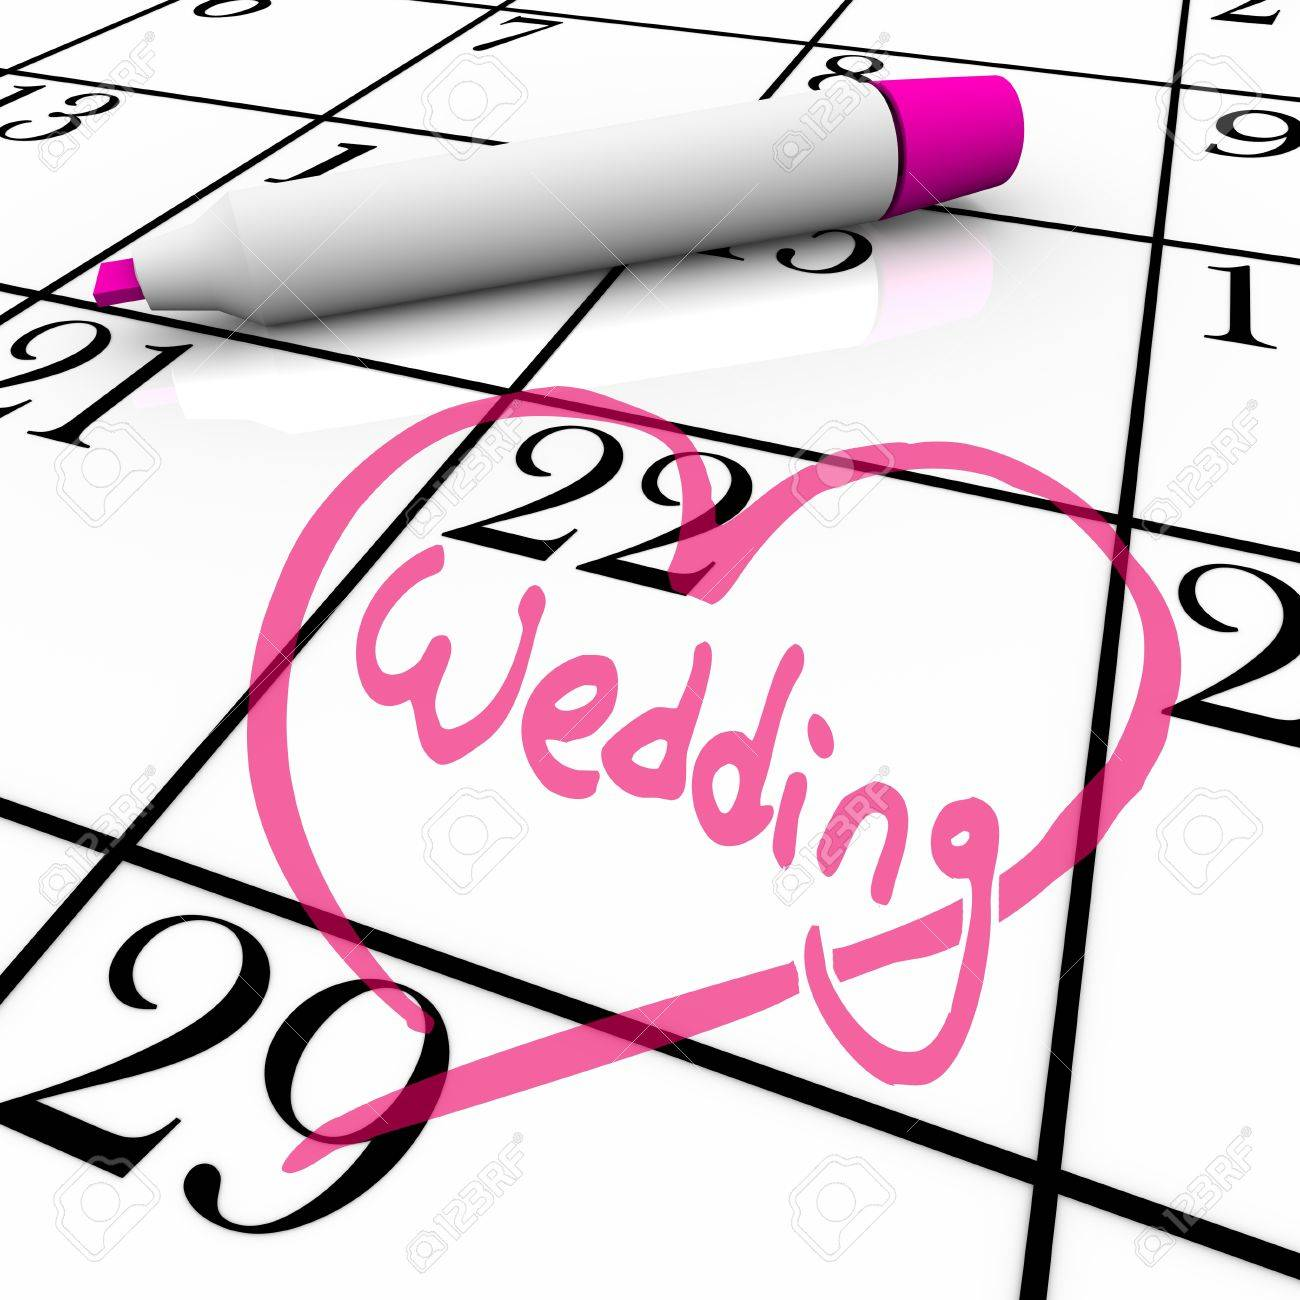 The date of a wedding is circled on a white calendar with a magenta colored marker, surrounded by a drawn heart Standard-Bild - 9029920